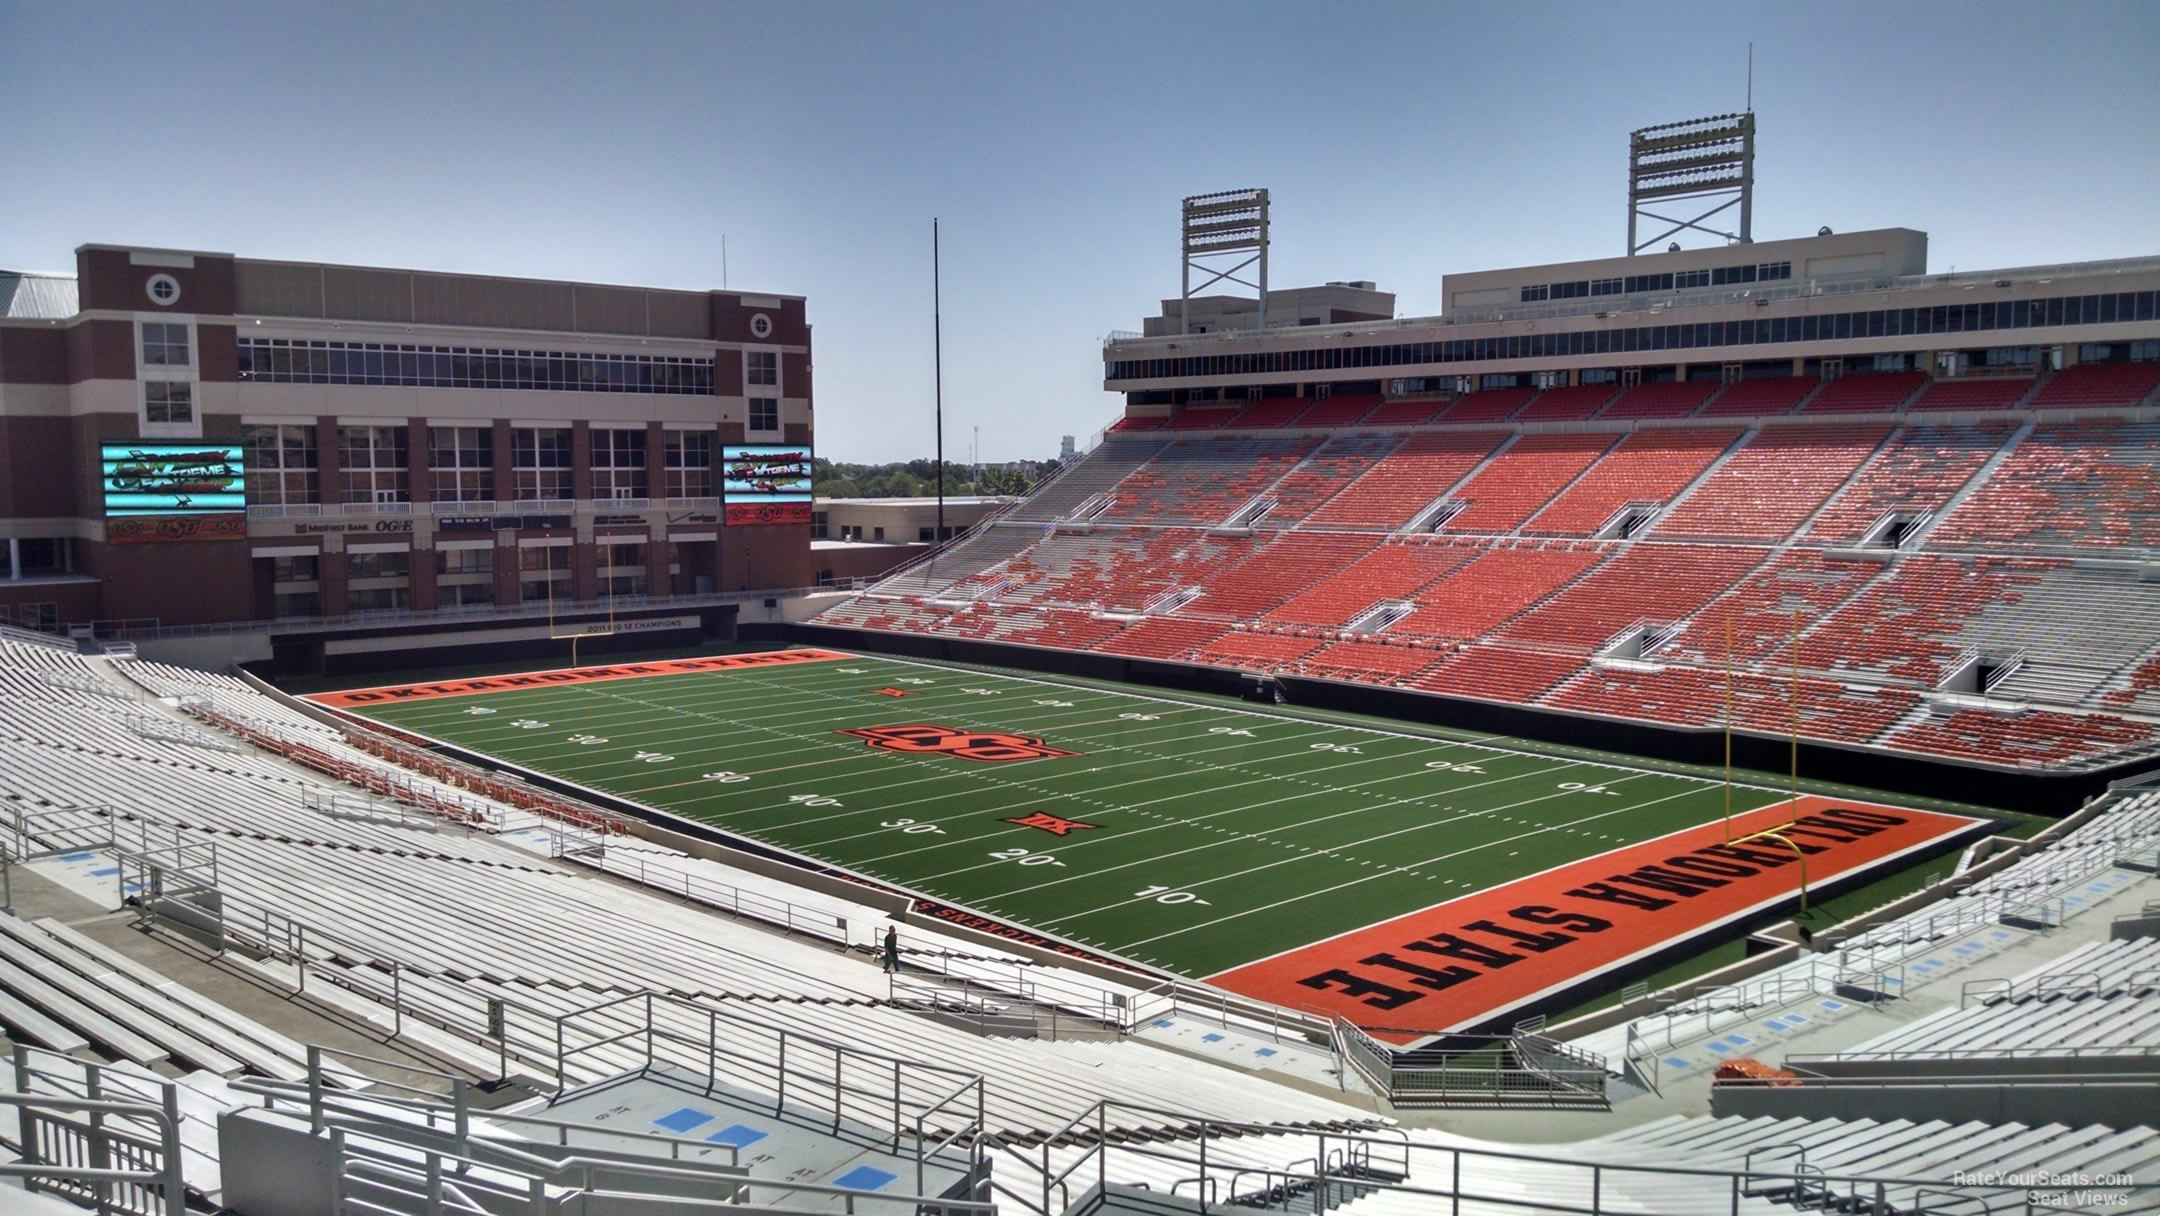 Section 326 at Boone Pickens Stadium - RateYourSeats.com